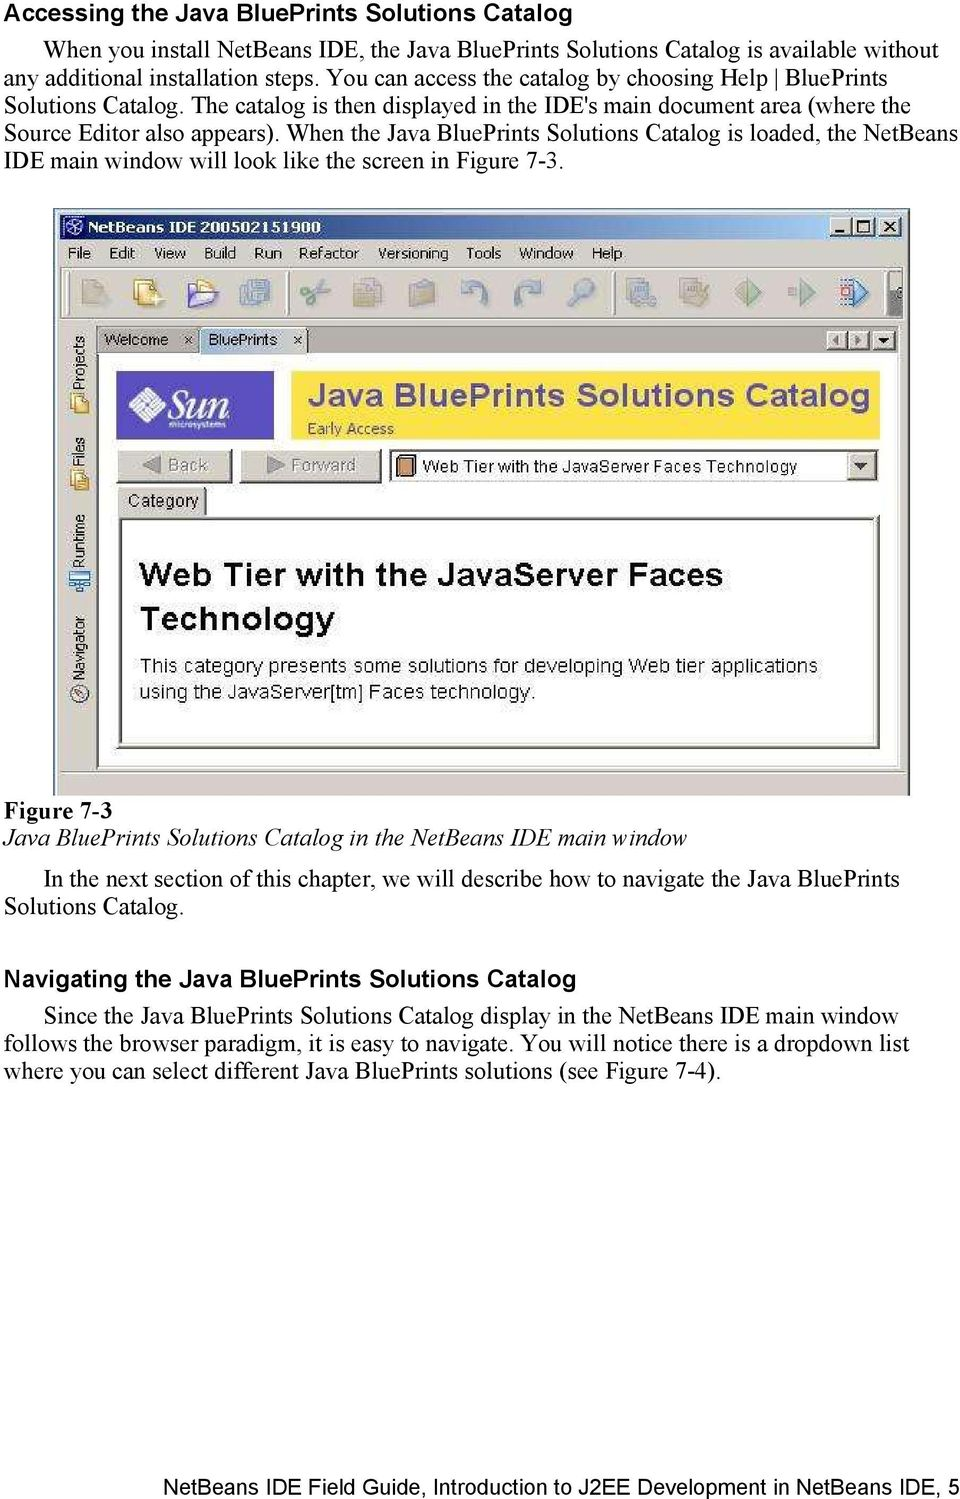 When the Java BluePrints Solutions Catalog is loaded, the NetBeans IDE main window will look like the screen in Figure 7-3.